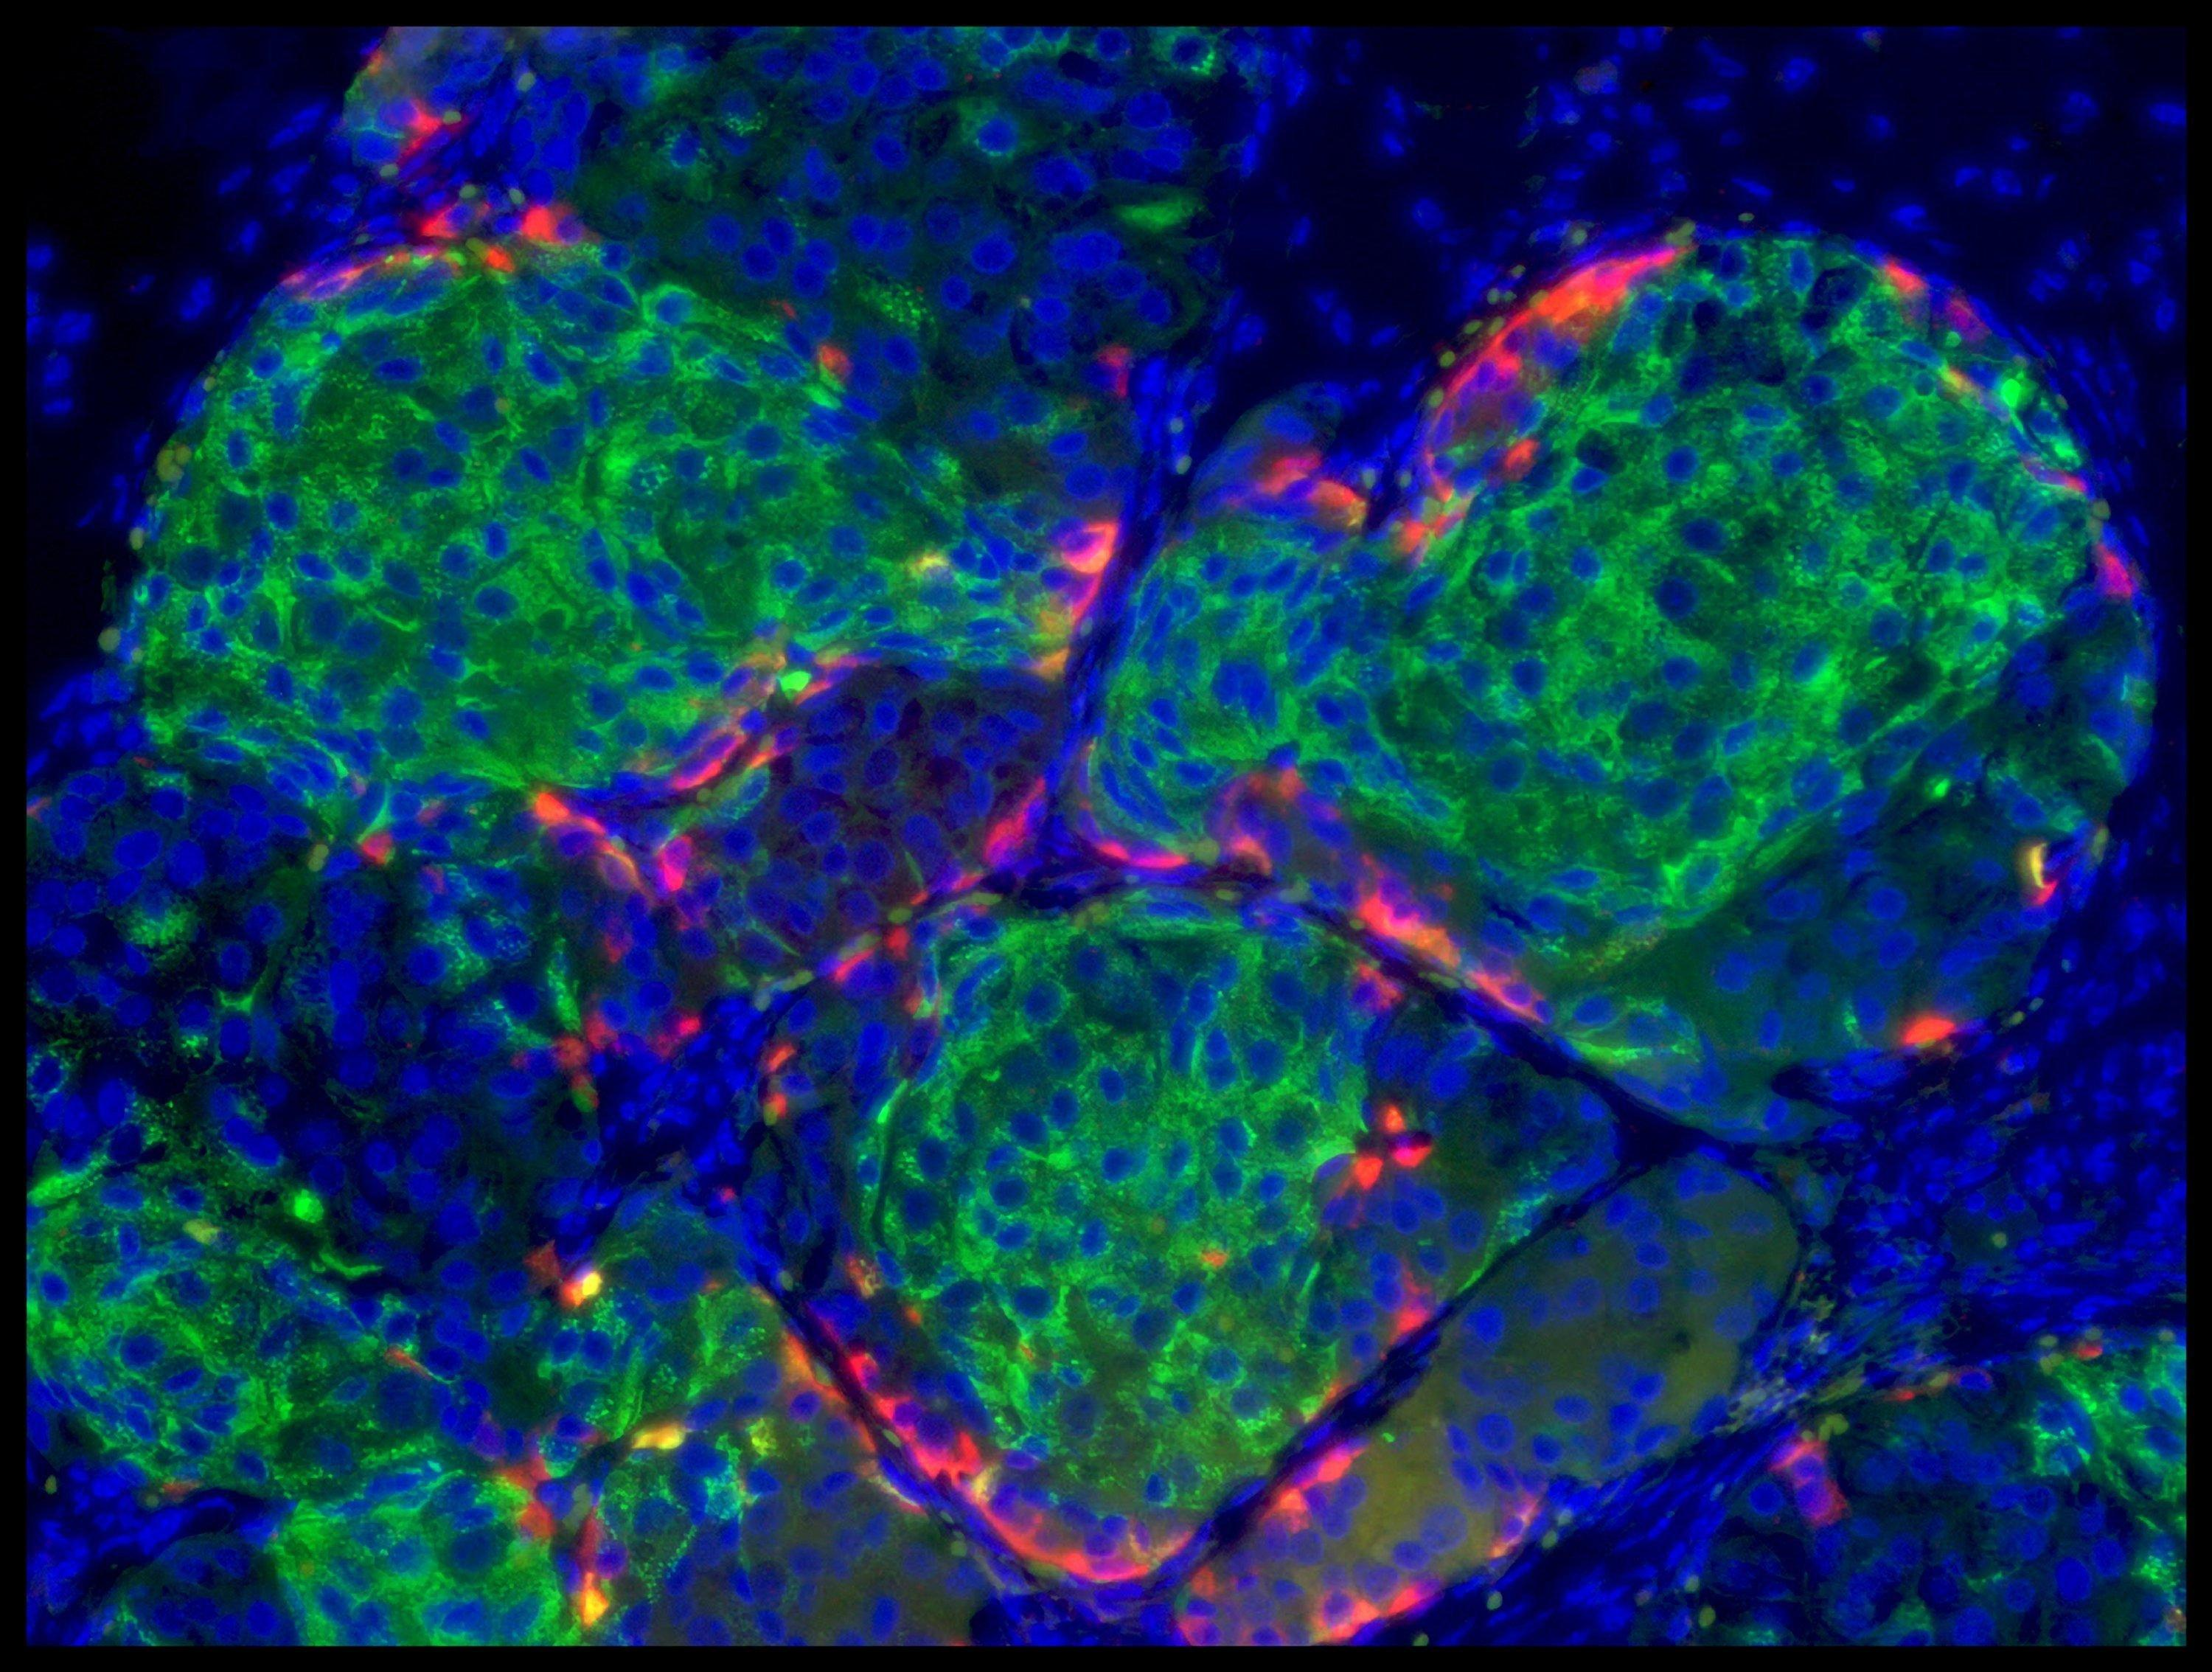 How Can Stem Cells Be Used To Treat Type 1 Diabetes